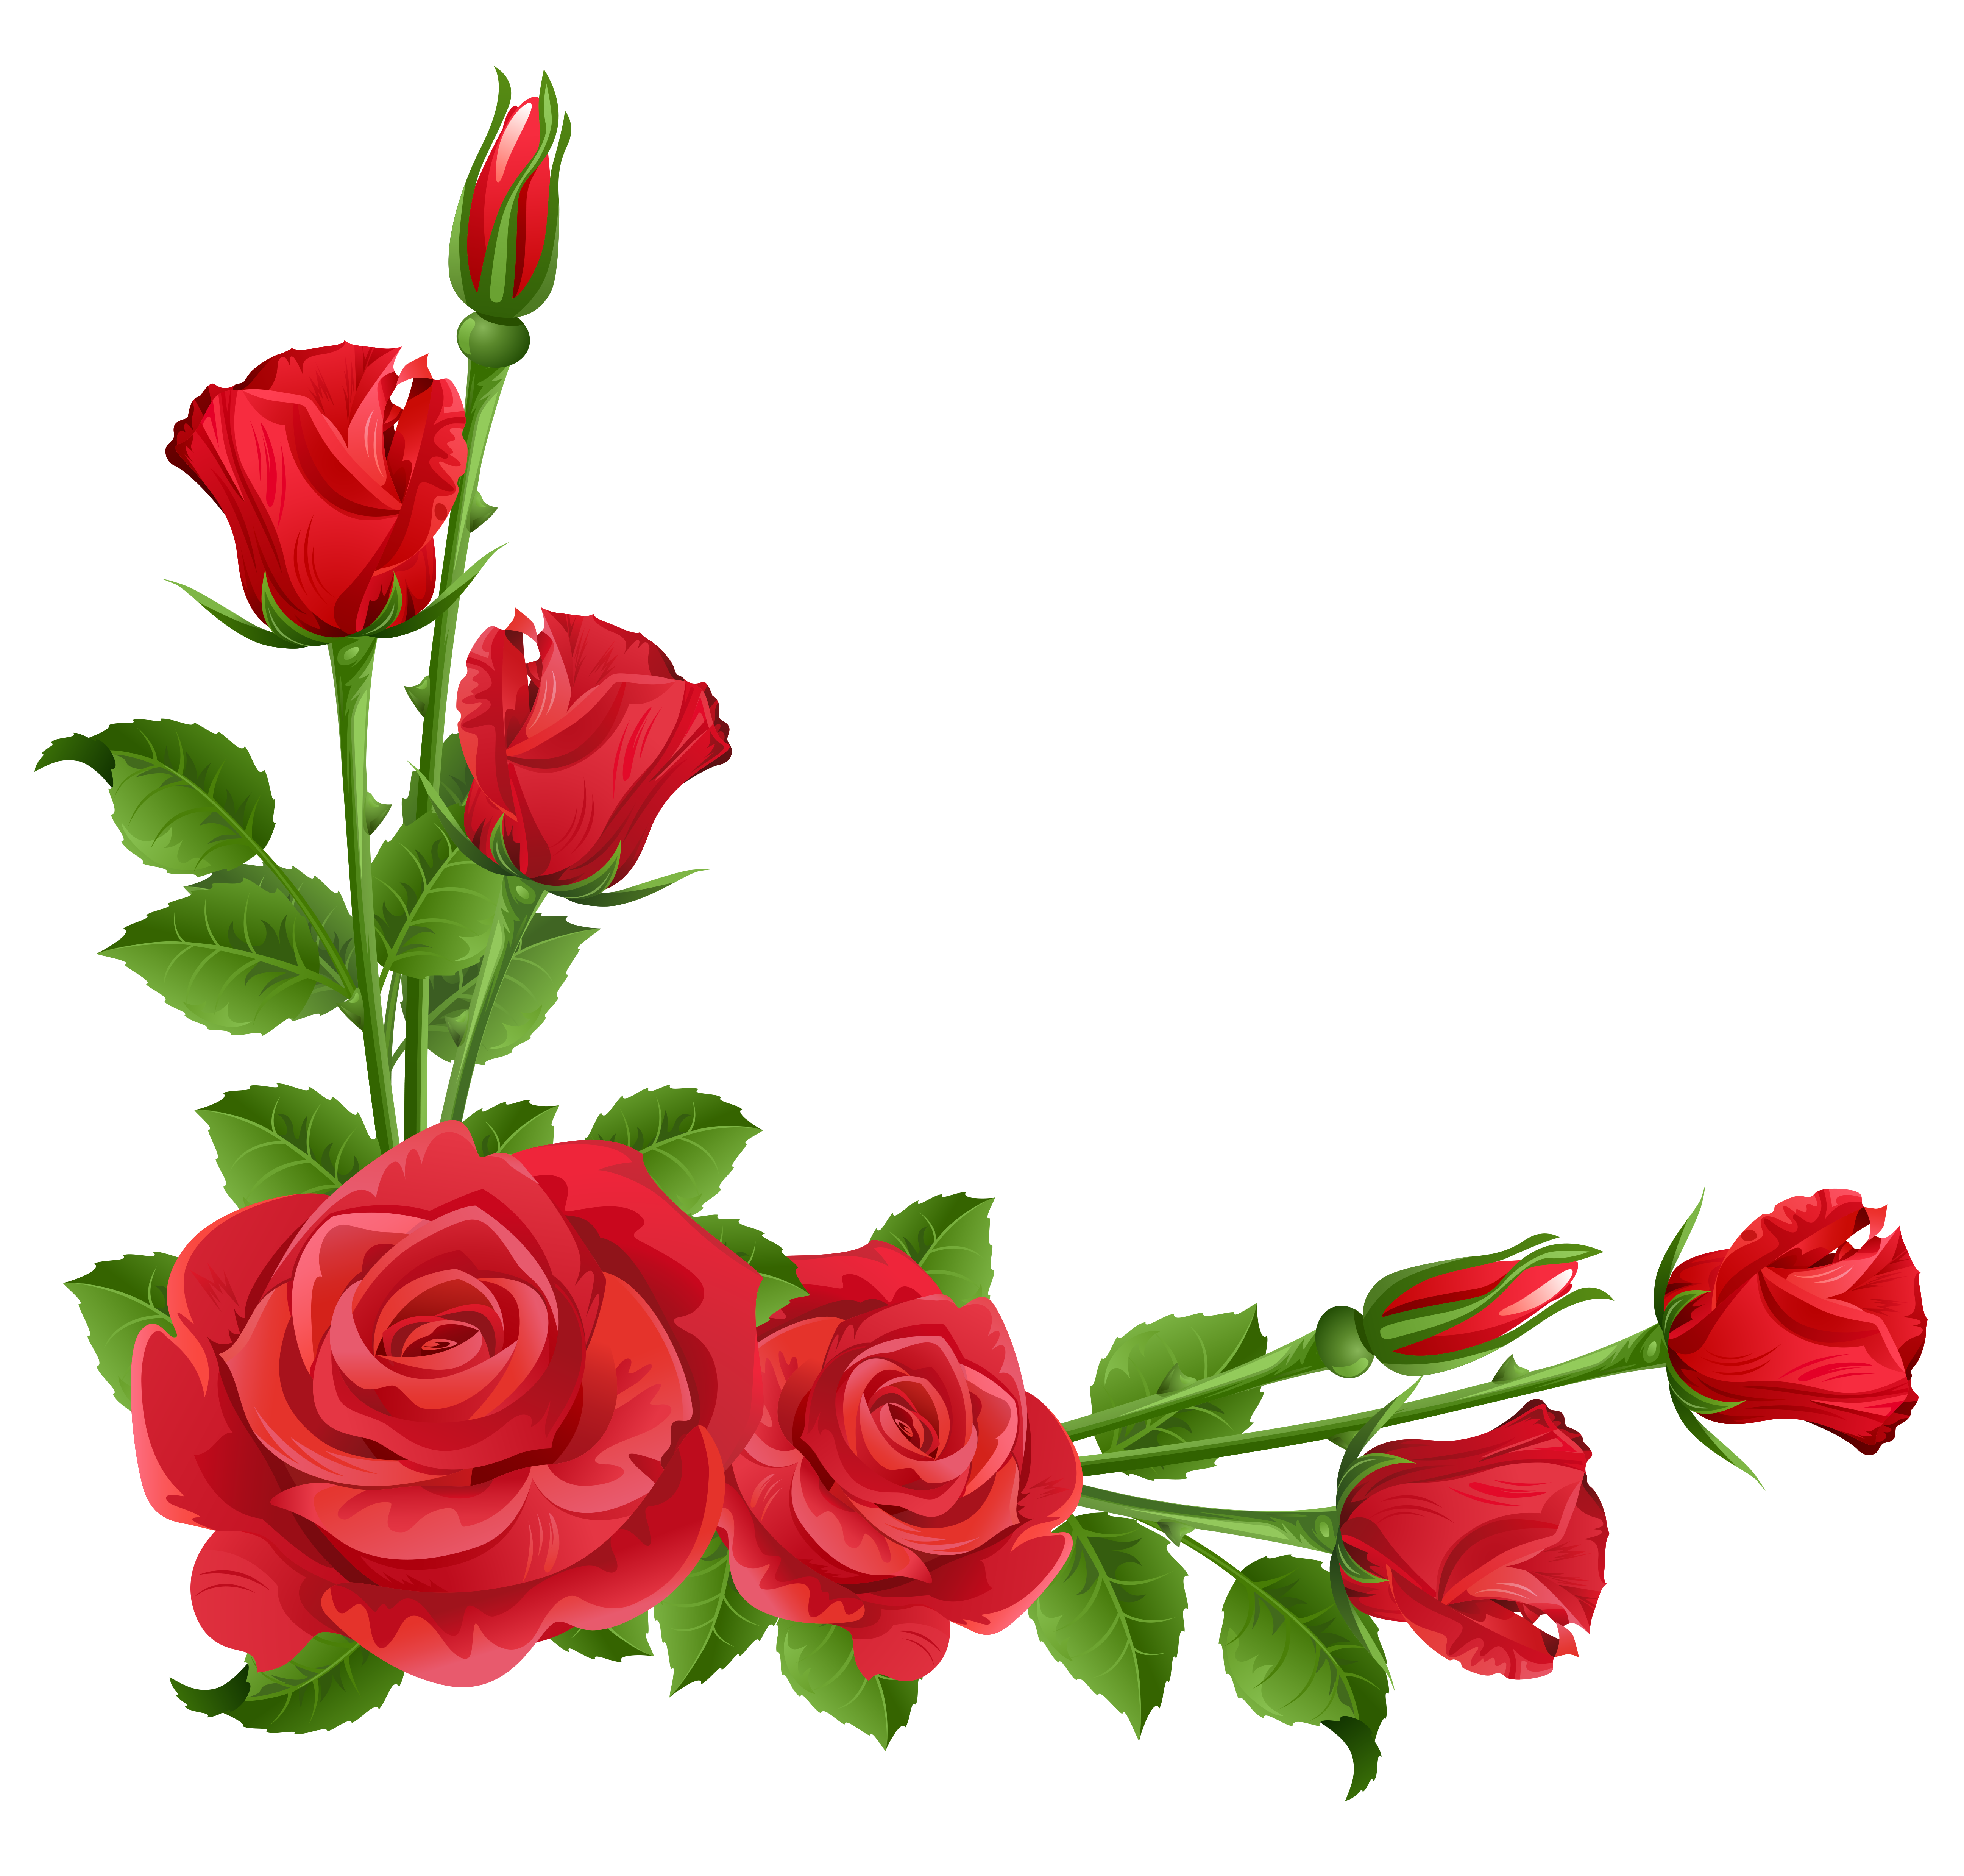 Red Roses Transparent Png Clipart Red Roses Clip Art Borders Beautiful Red Roses